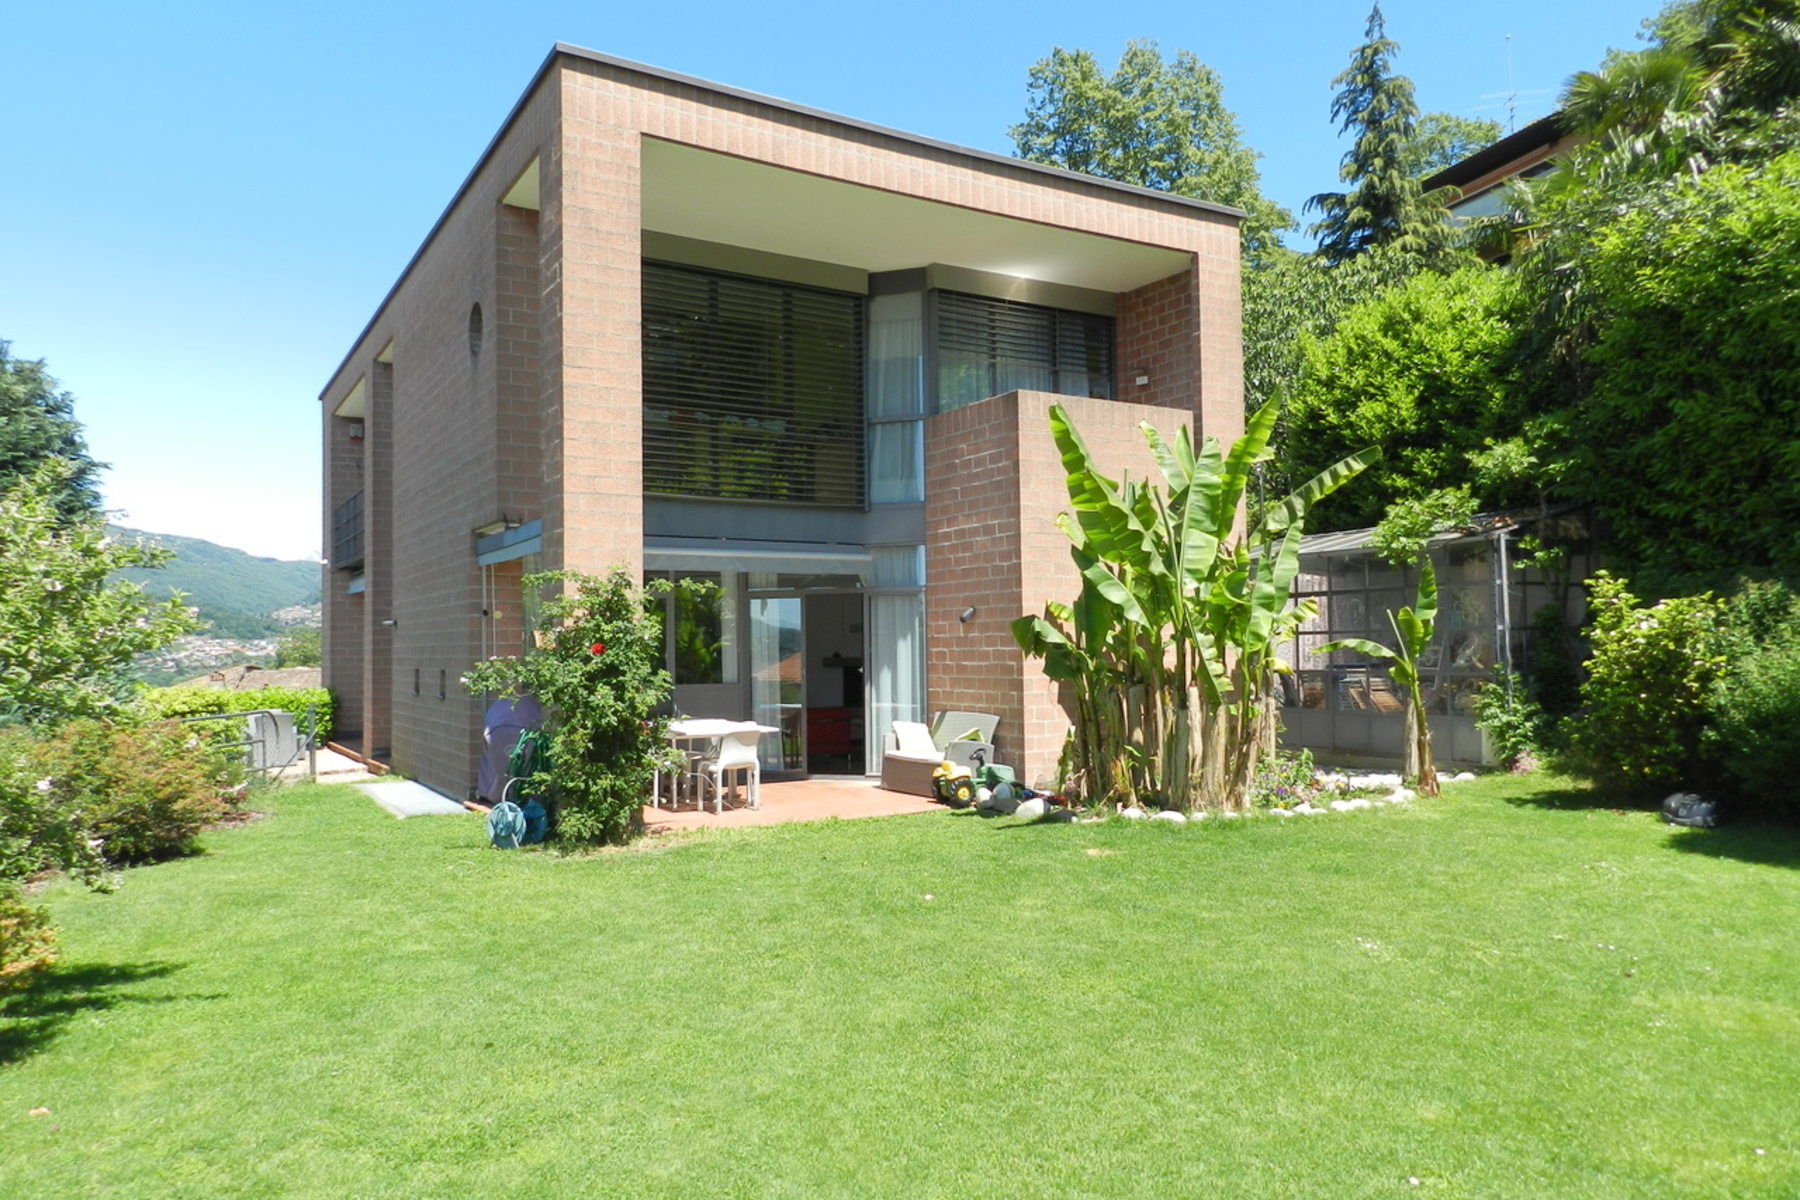 一戸建て のために 売買 アット Modern house with panoramic view Davesco-Soragno, Lugano, Ticino, 6900 スイス